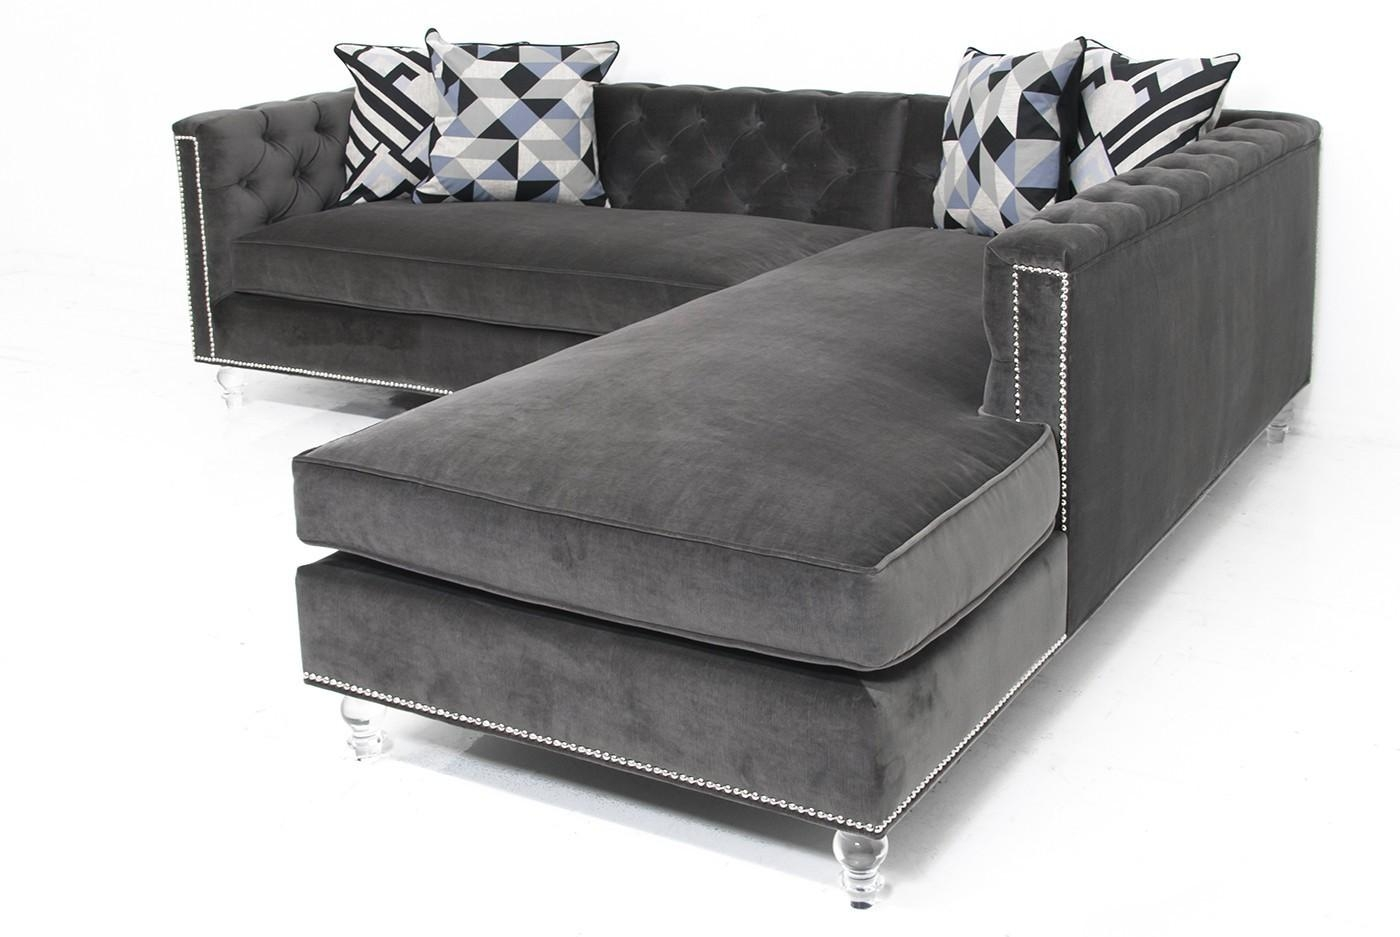 Sofa: Comfort And Style Is Evident In This Dynamic With Tufted With Tufted Sleeper Sofas (View 13 of 20)